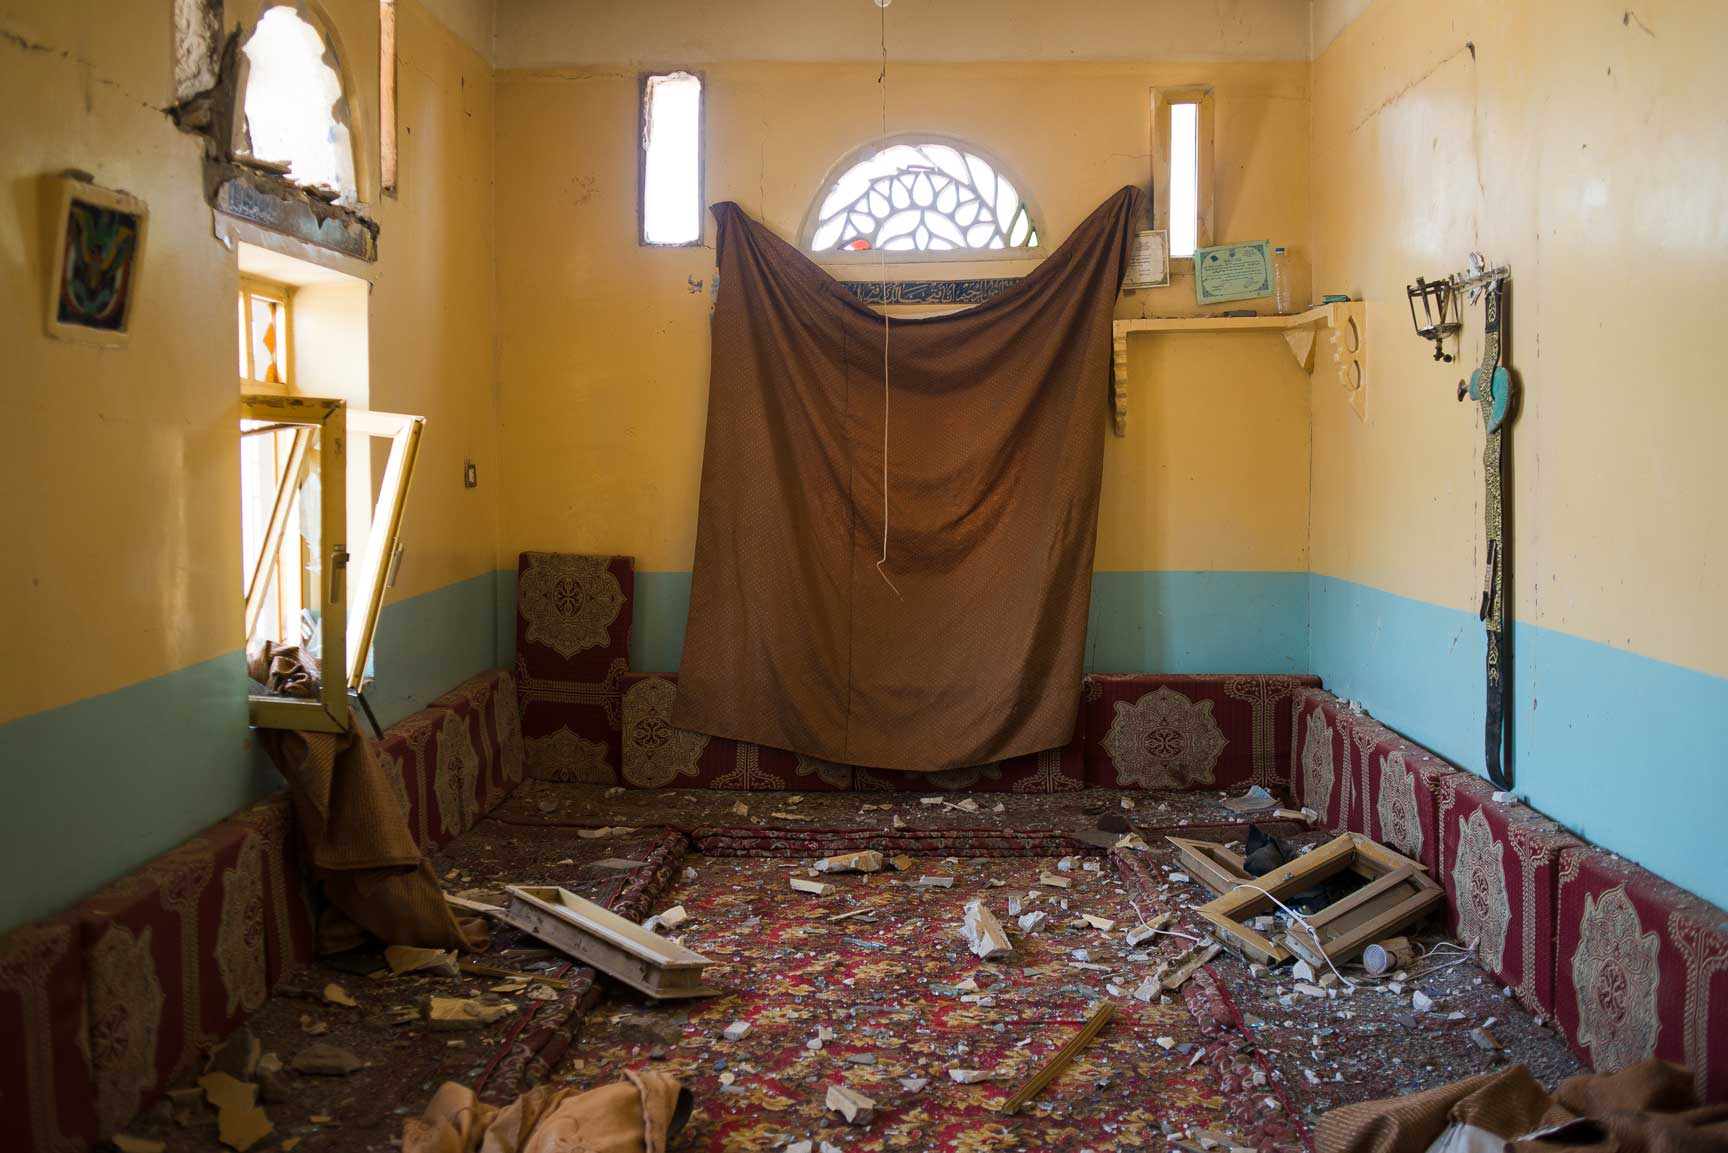 Glass and concrete cover the floor of a home after an airstrike hit an open-air market, Thursday July 7, 2015 in al Joob Village, Yemen. Two airstrikes on July 6 hit a public market near homes and a mosque and farmers selling produce on the side of the road; the two combined killed over 30 civilians.